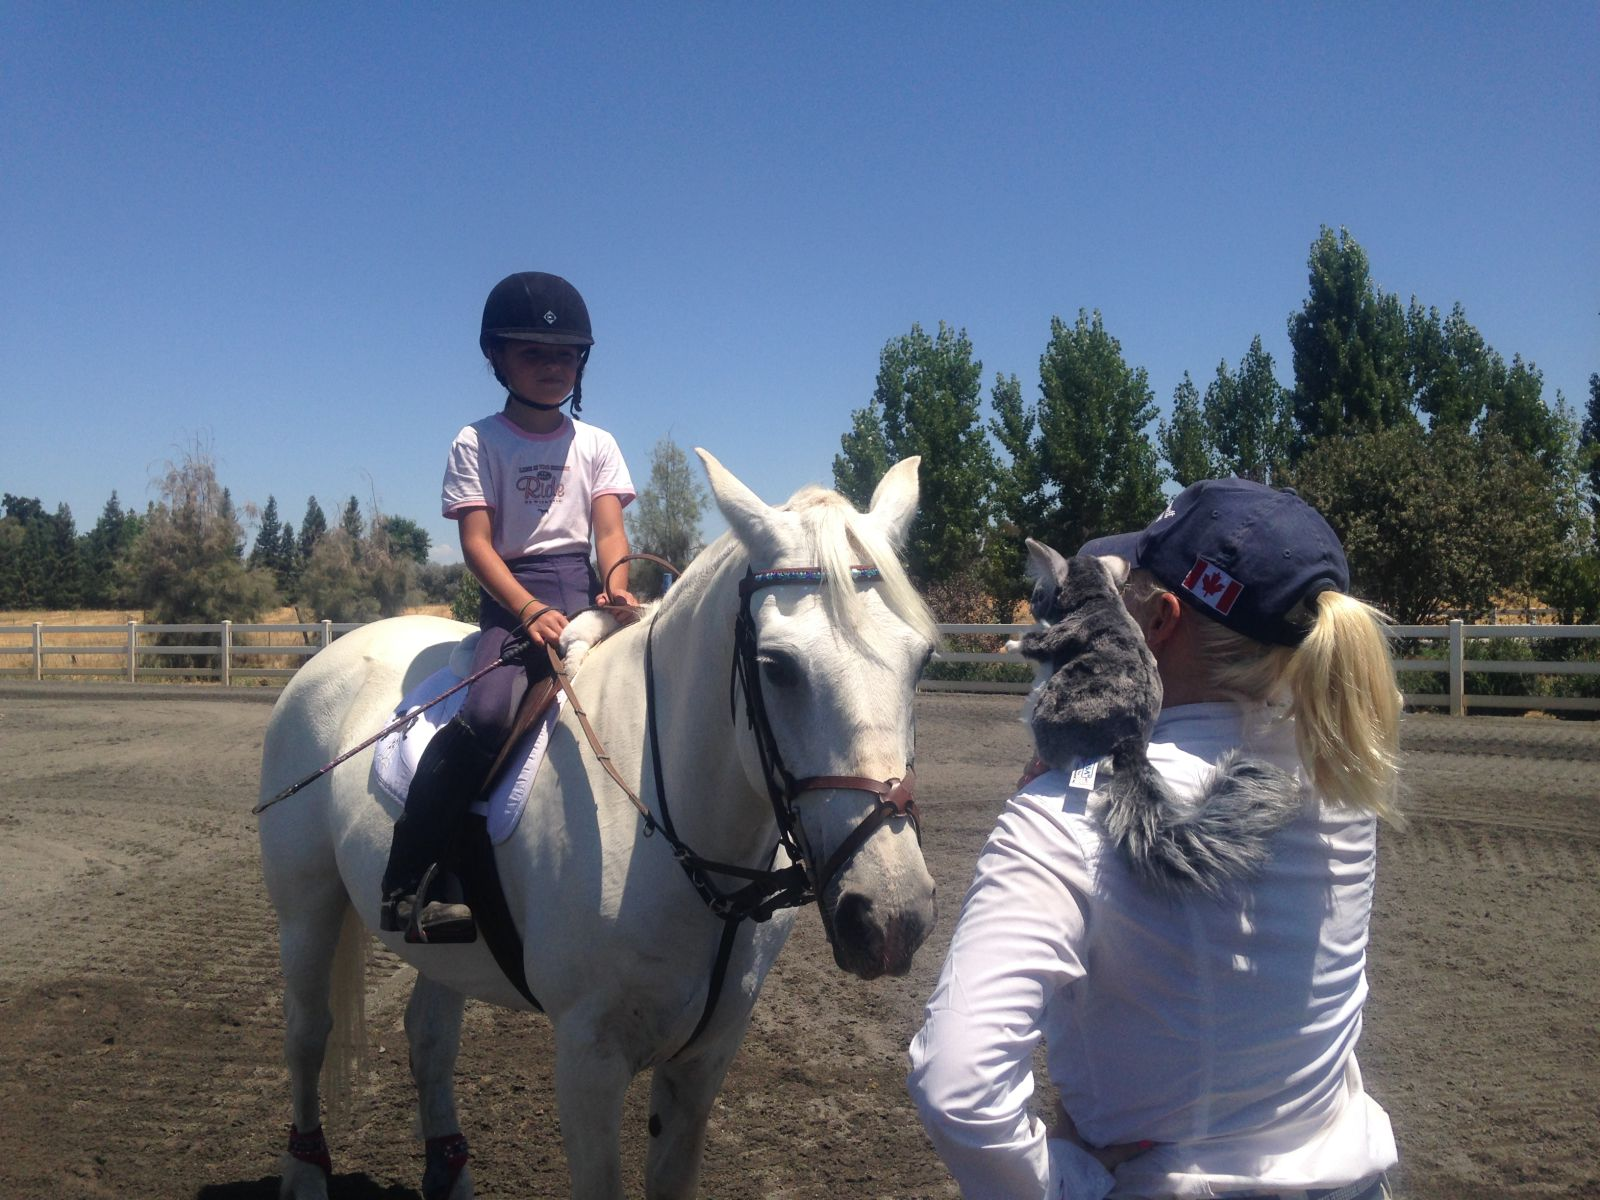 The Chinch, Hawley and Taylor at Dragonfire Farm. Photo by Erin Critz